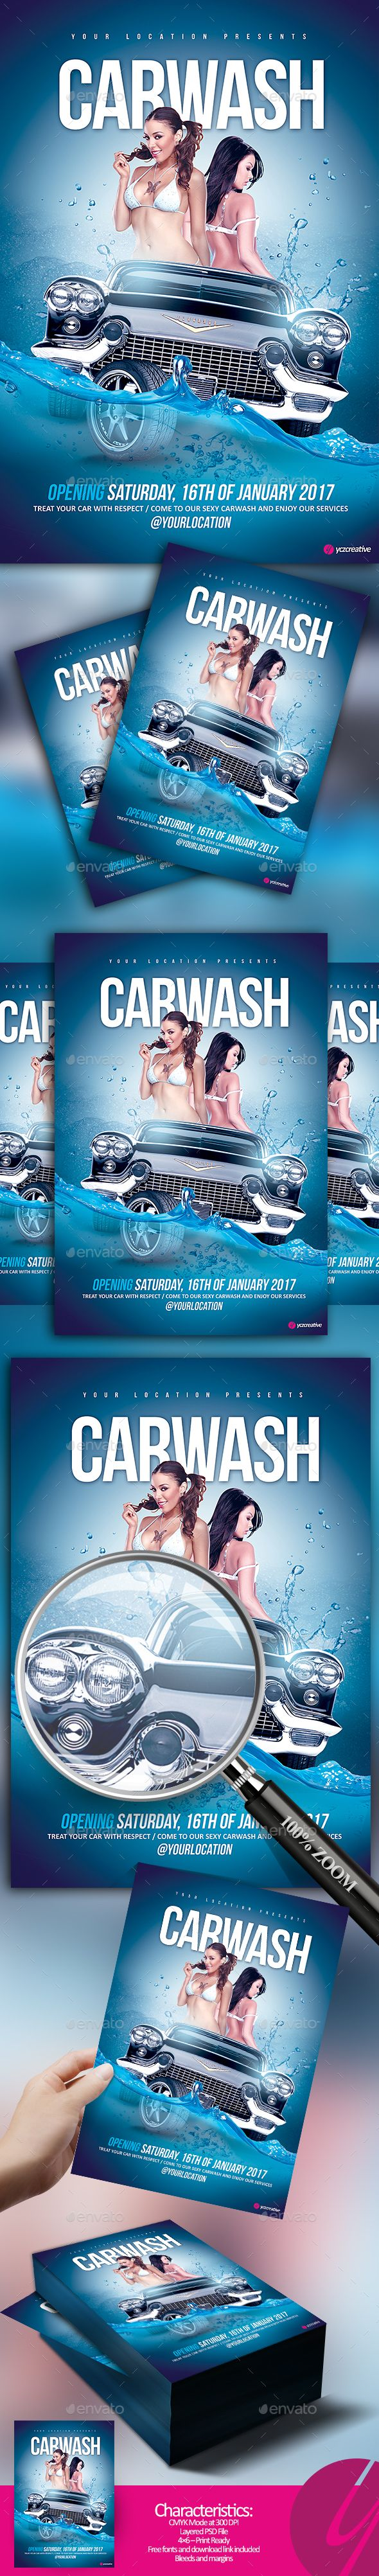 Car Wash Flyer — Photoshop PSD #topless #booth • Download ➝ https://graphicriver.net/item/car-wash-flyer/19189929?ref=pxcr